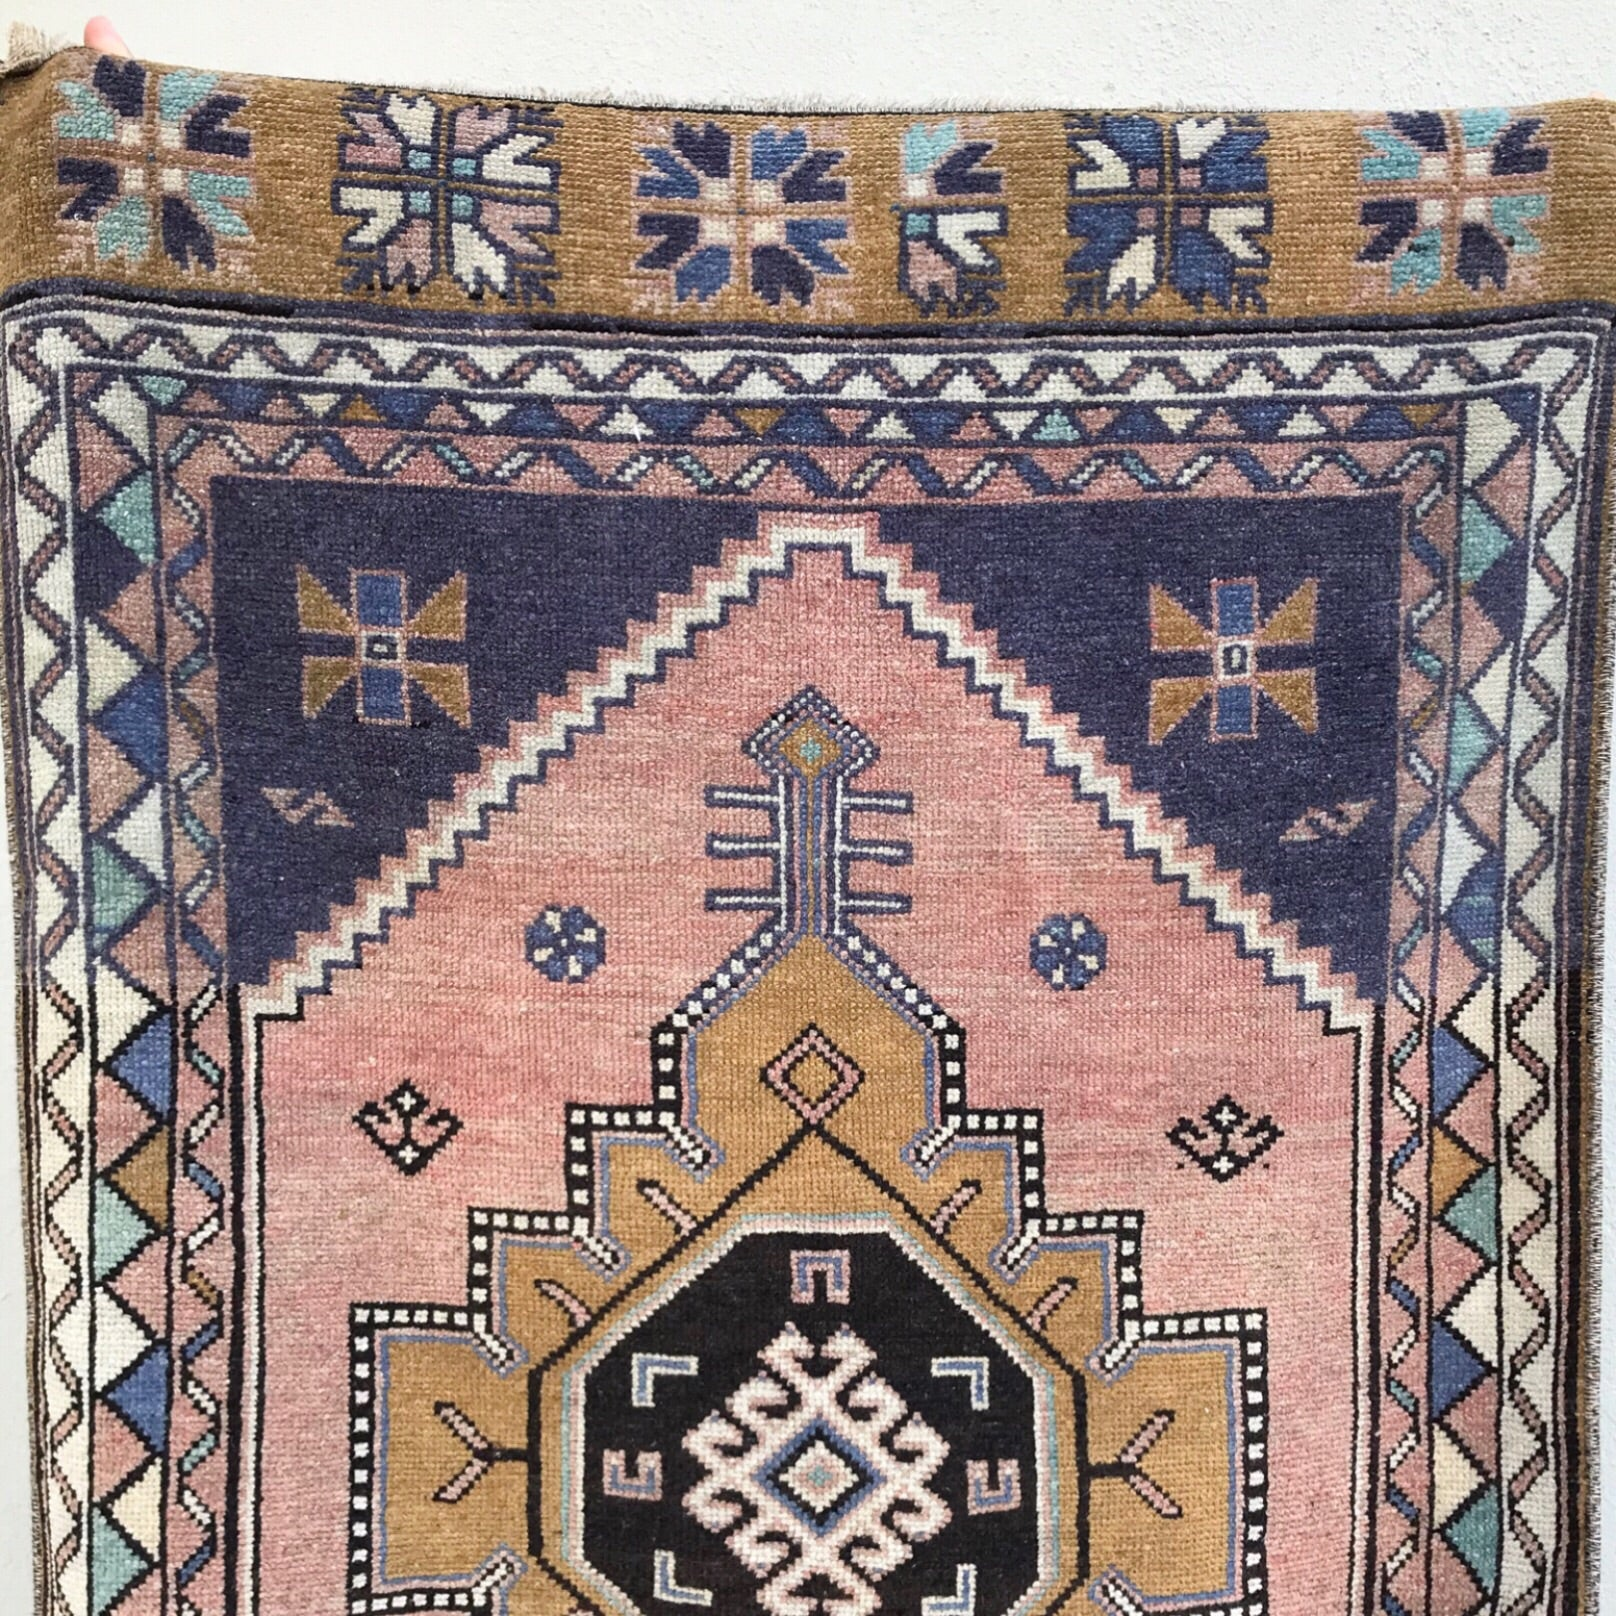 This vintage Anatolian Niğde rug has amazing colors and design. The runner is sized at 2'6x12'5.